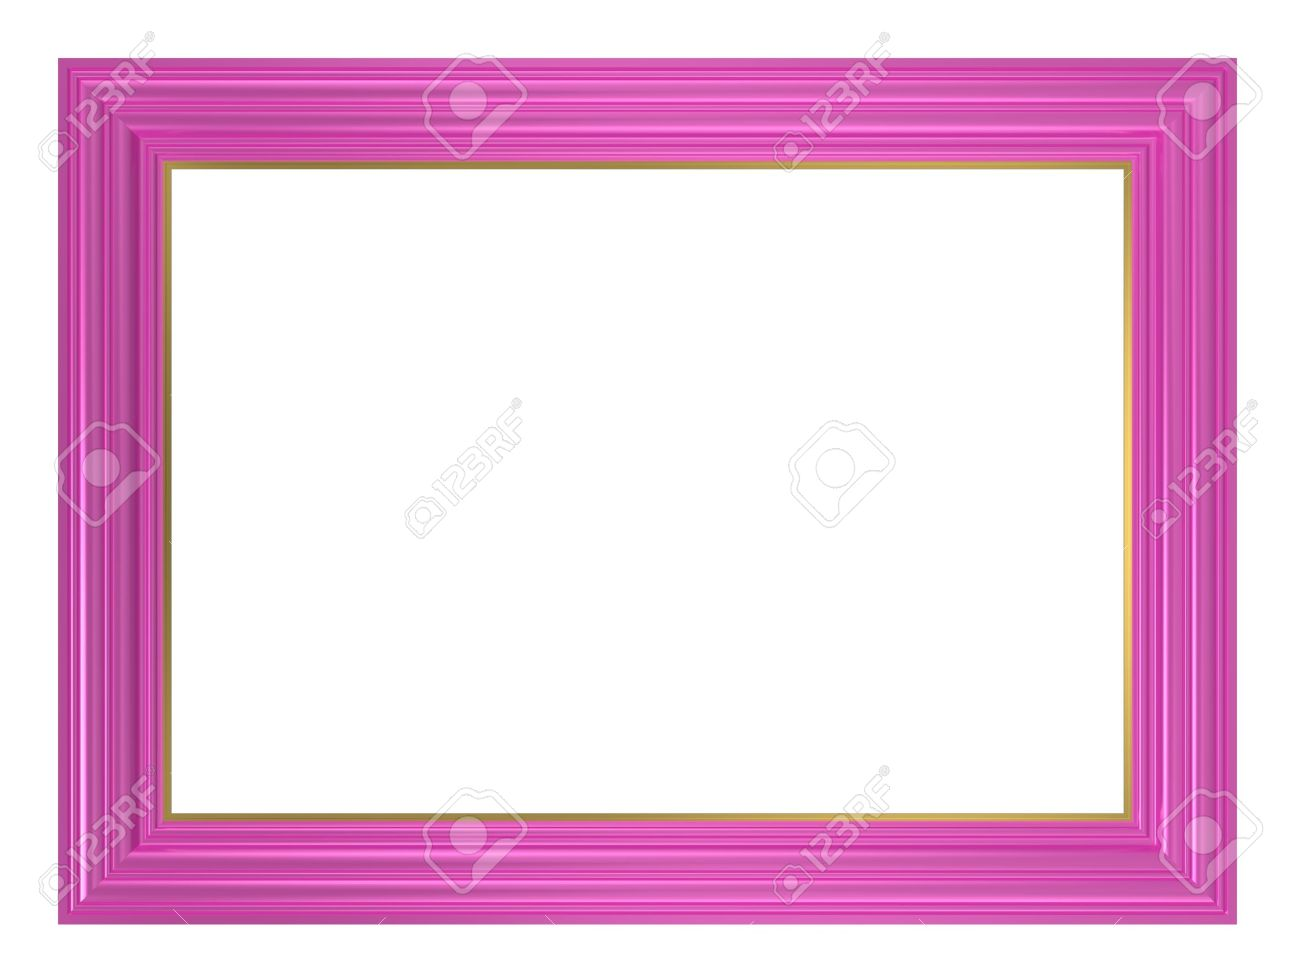 Pink frame isolated on white background. Computer generated 3D photo rendering. Stock Photo - 11238700